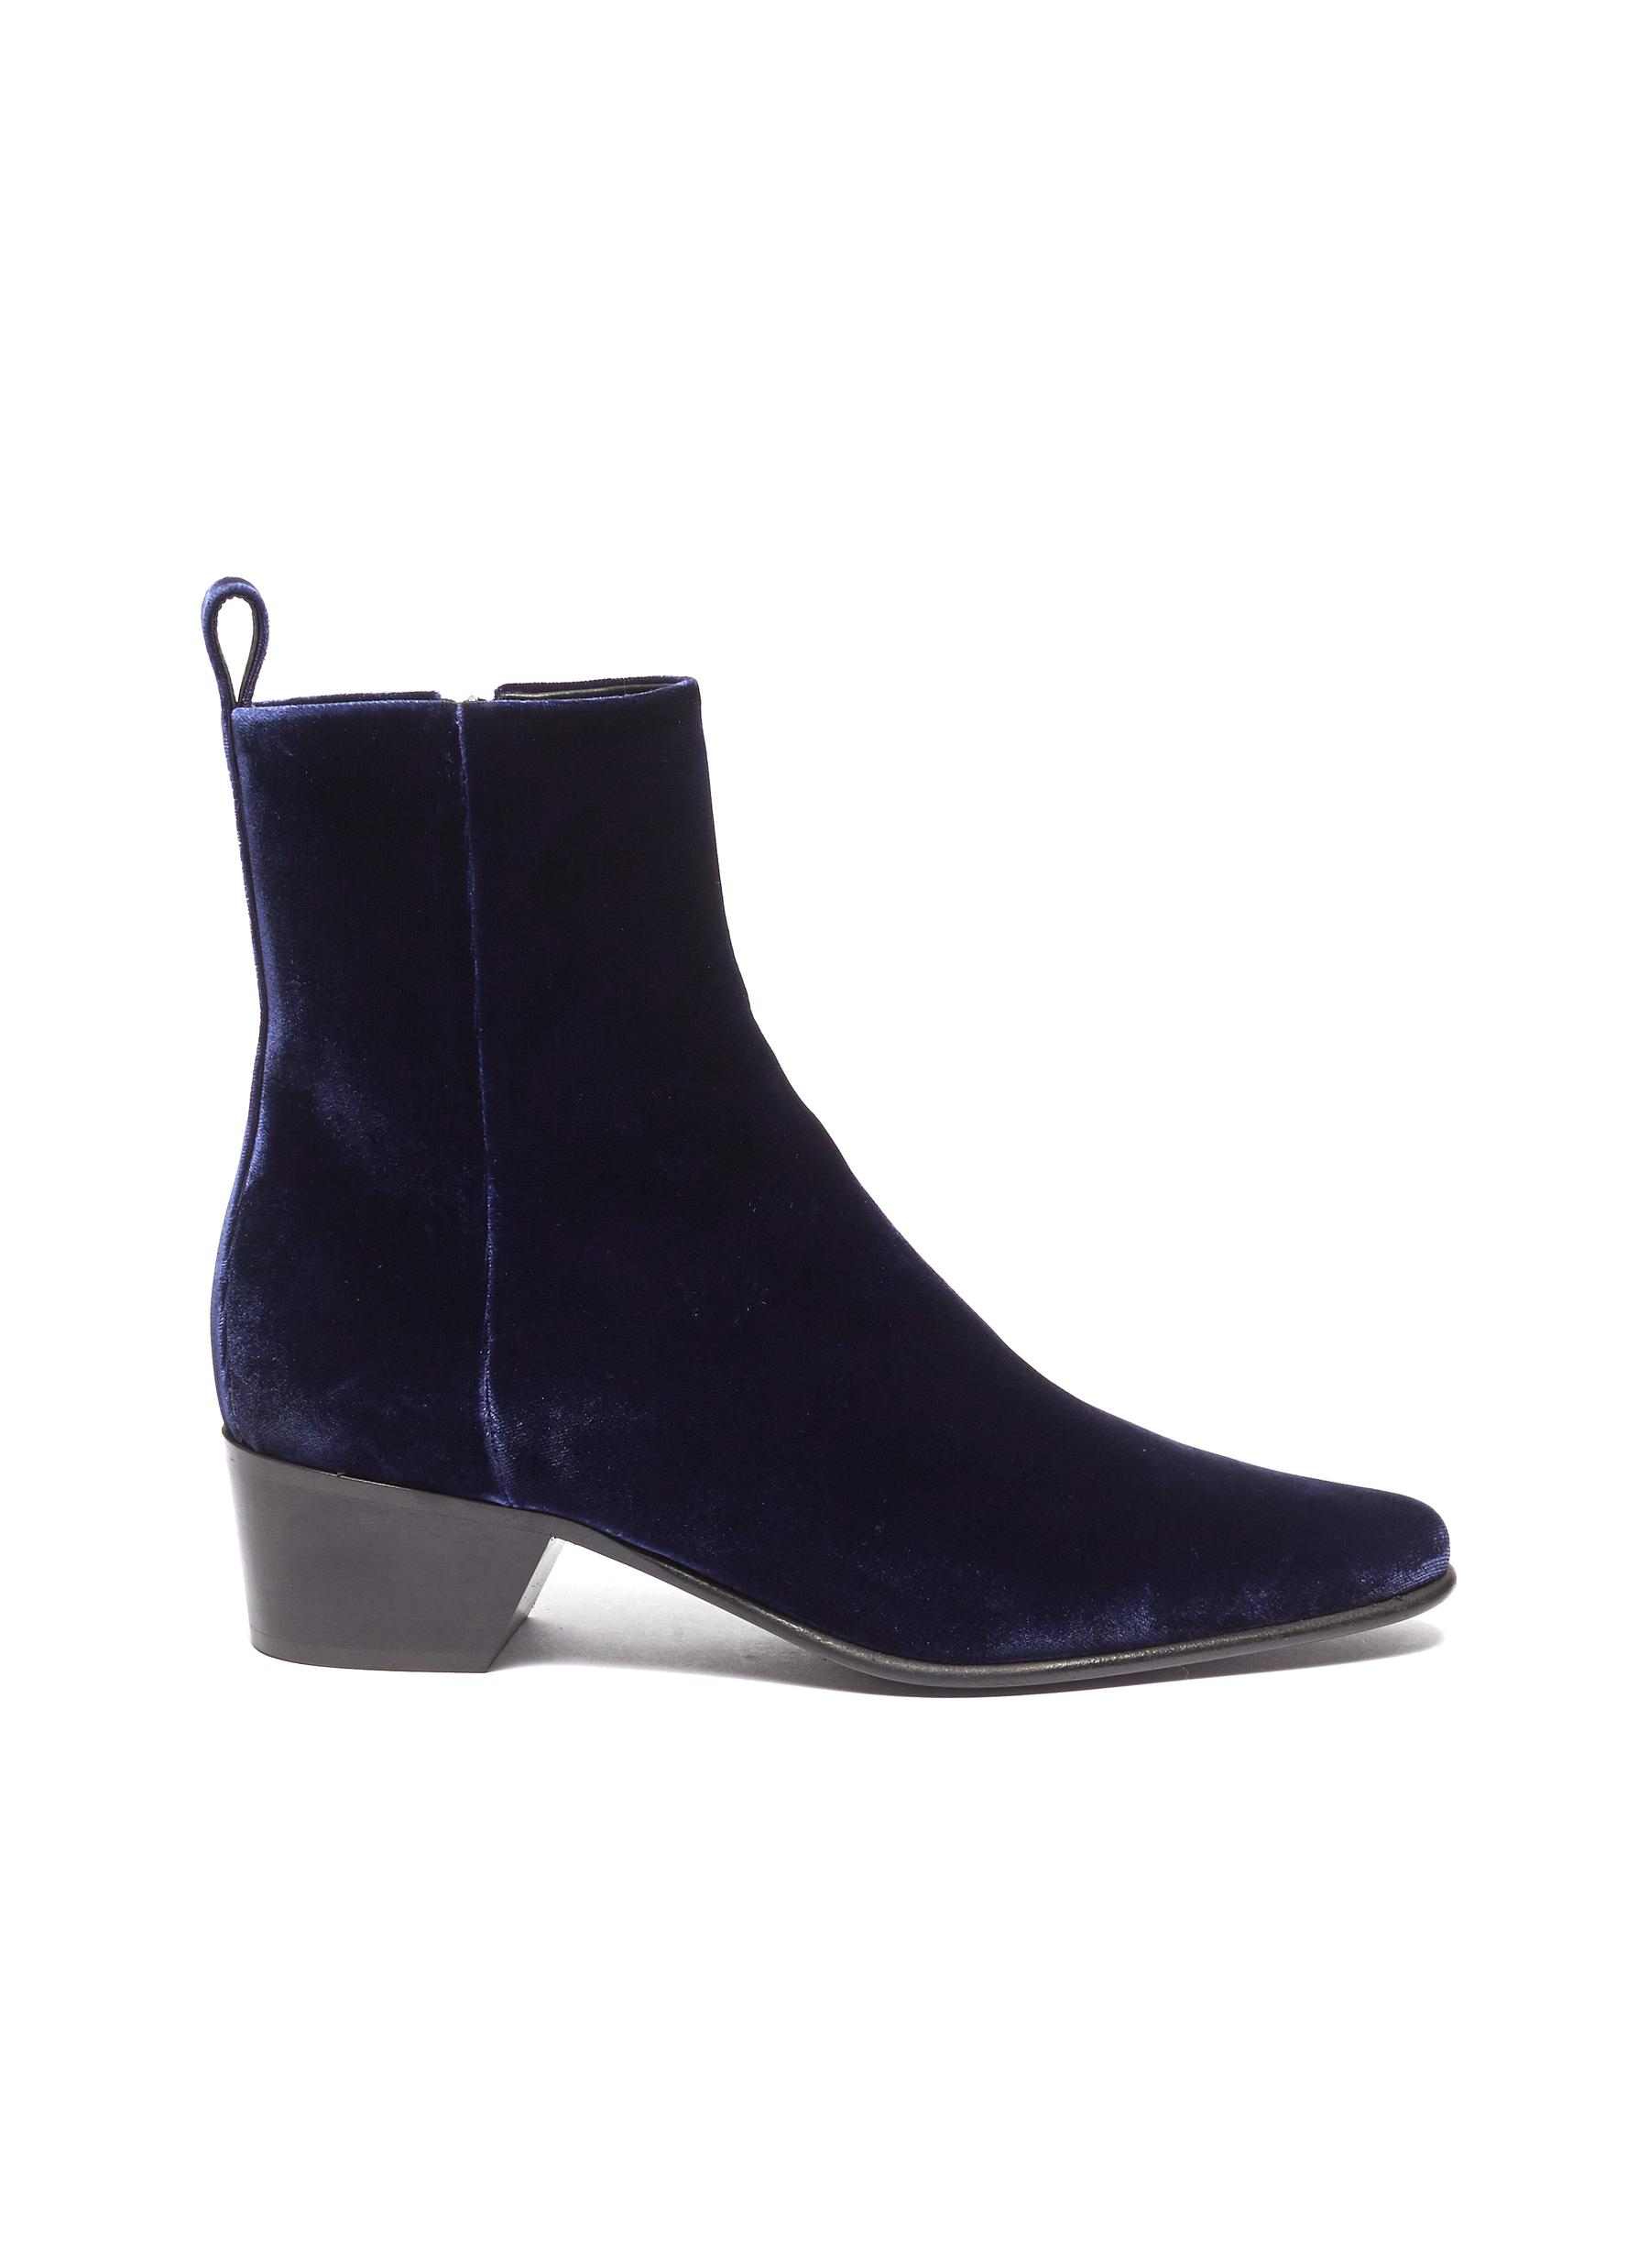 Reno velvet ankle boots by Pierre Hardy